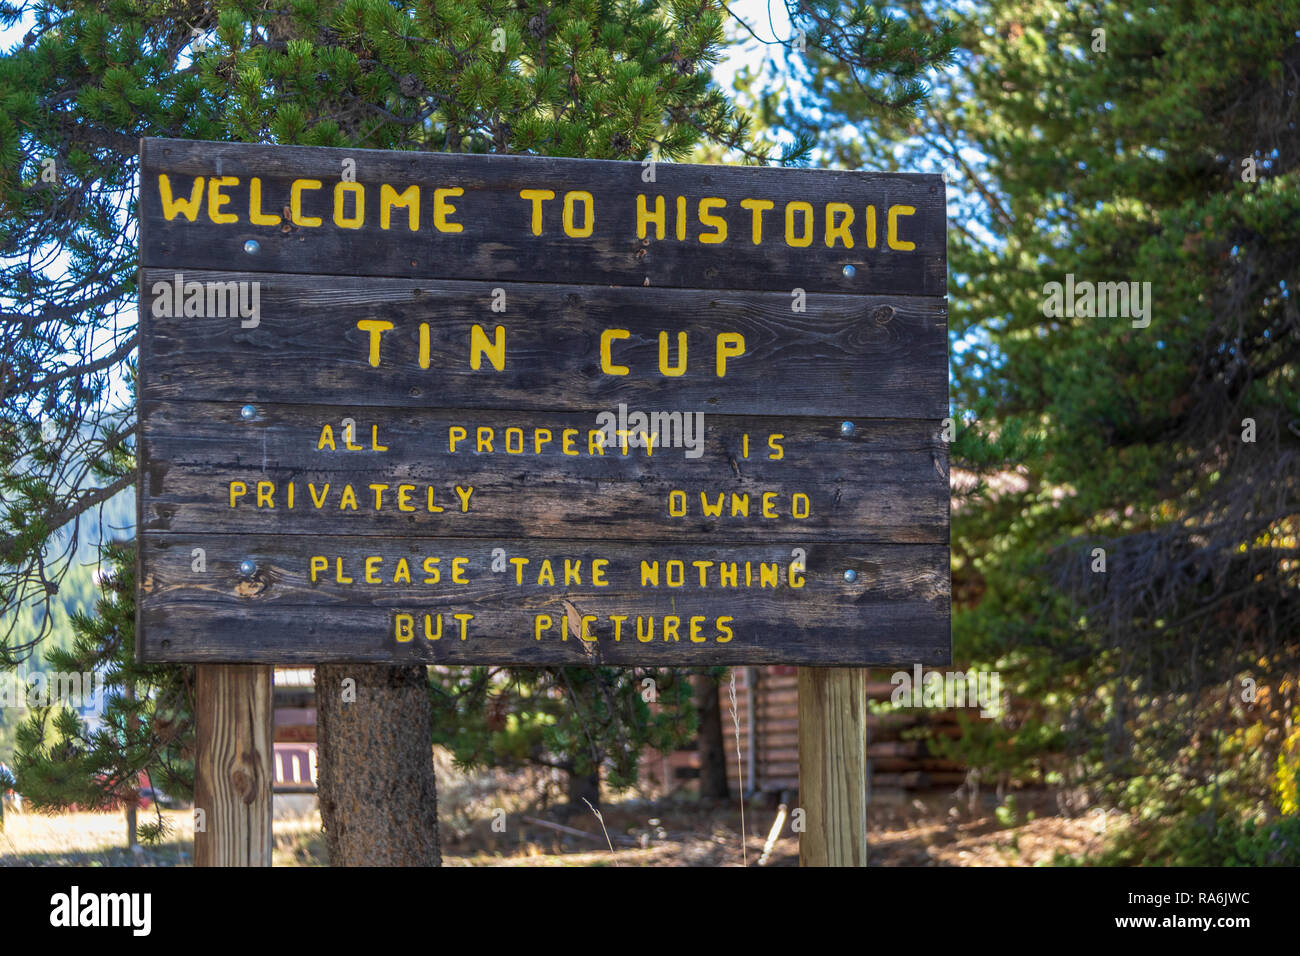 Historic Tin Cup community in Colorado, rural area with limited access in winter. - Stock Image